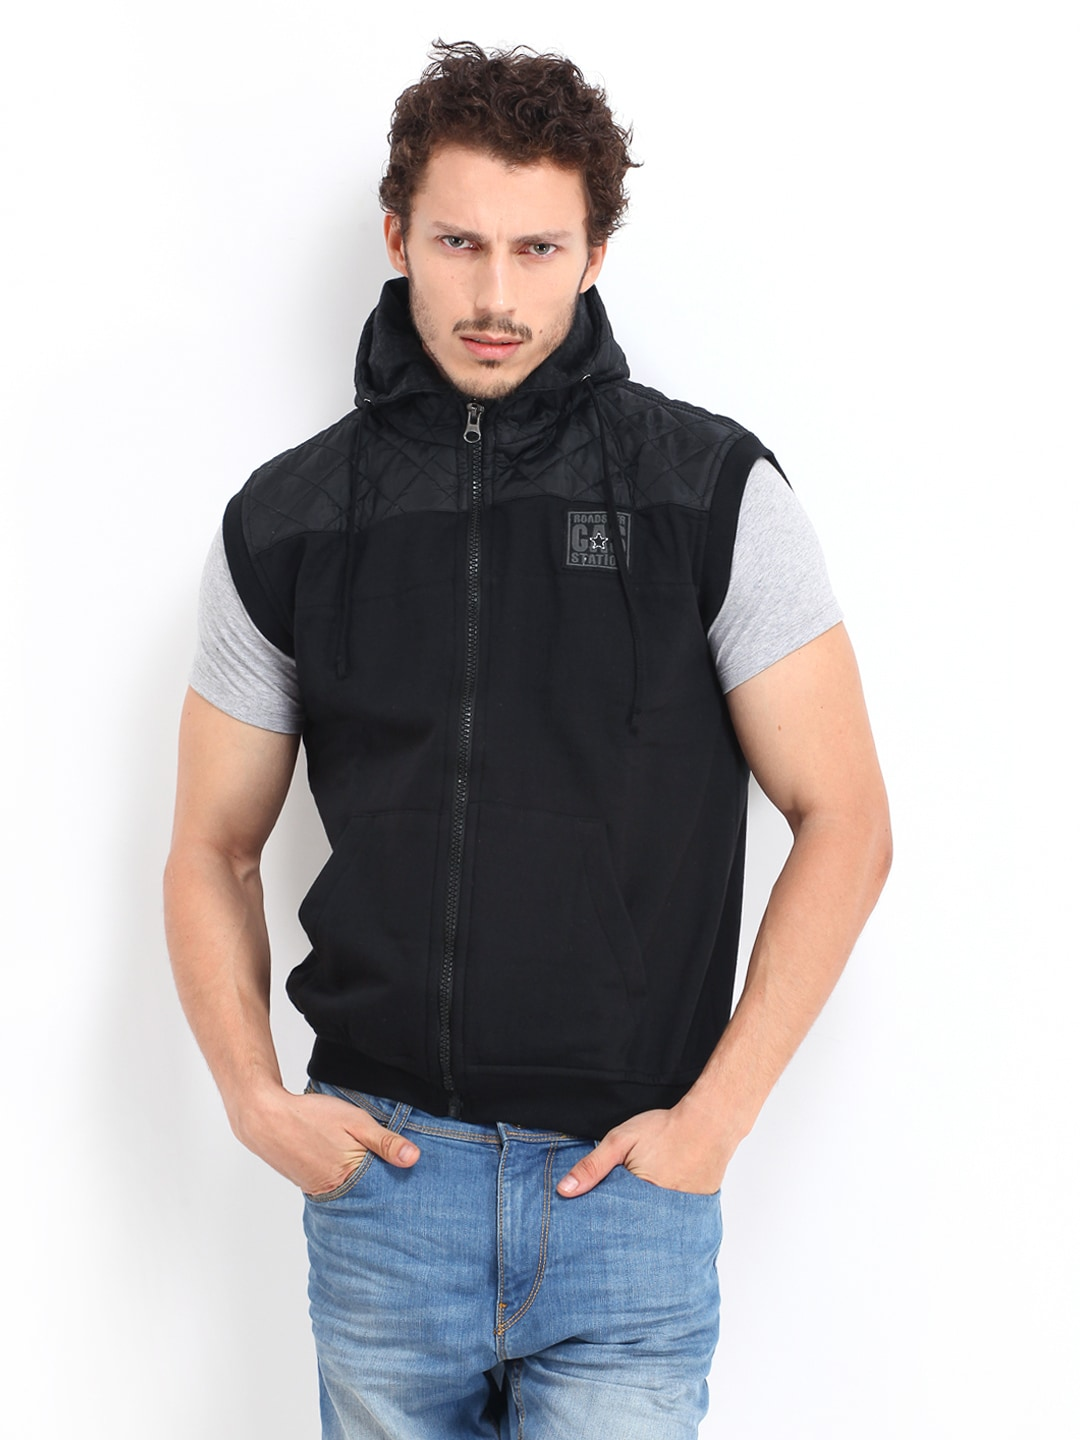 Find great deals on eBay for Mens Sleeveless Jacket in Men's Coats And Jackets. Shop with confidence. Find great deals on eBay for Mens Sleeveless Jacket in Men's Coats And Jackets. Men Hoodies Sleeveless Zipper Sweatshirt Hooded Jacket Vest Coat Sport Waistcoat. $ Buy It Now. Free Shipping. 17+ watching | 23+ sold; Size: M L XL 2XL.